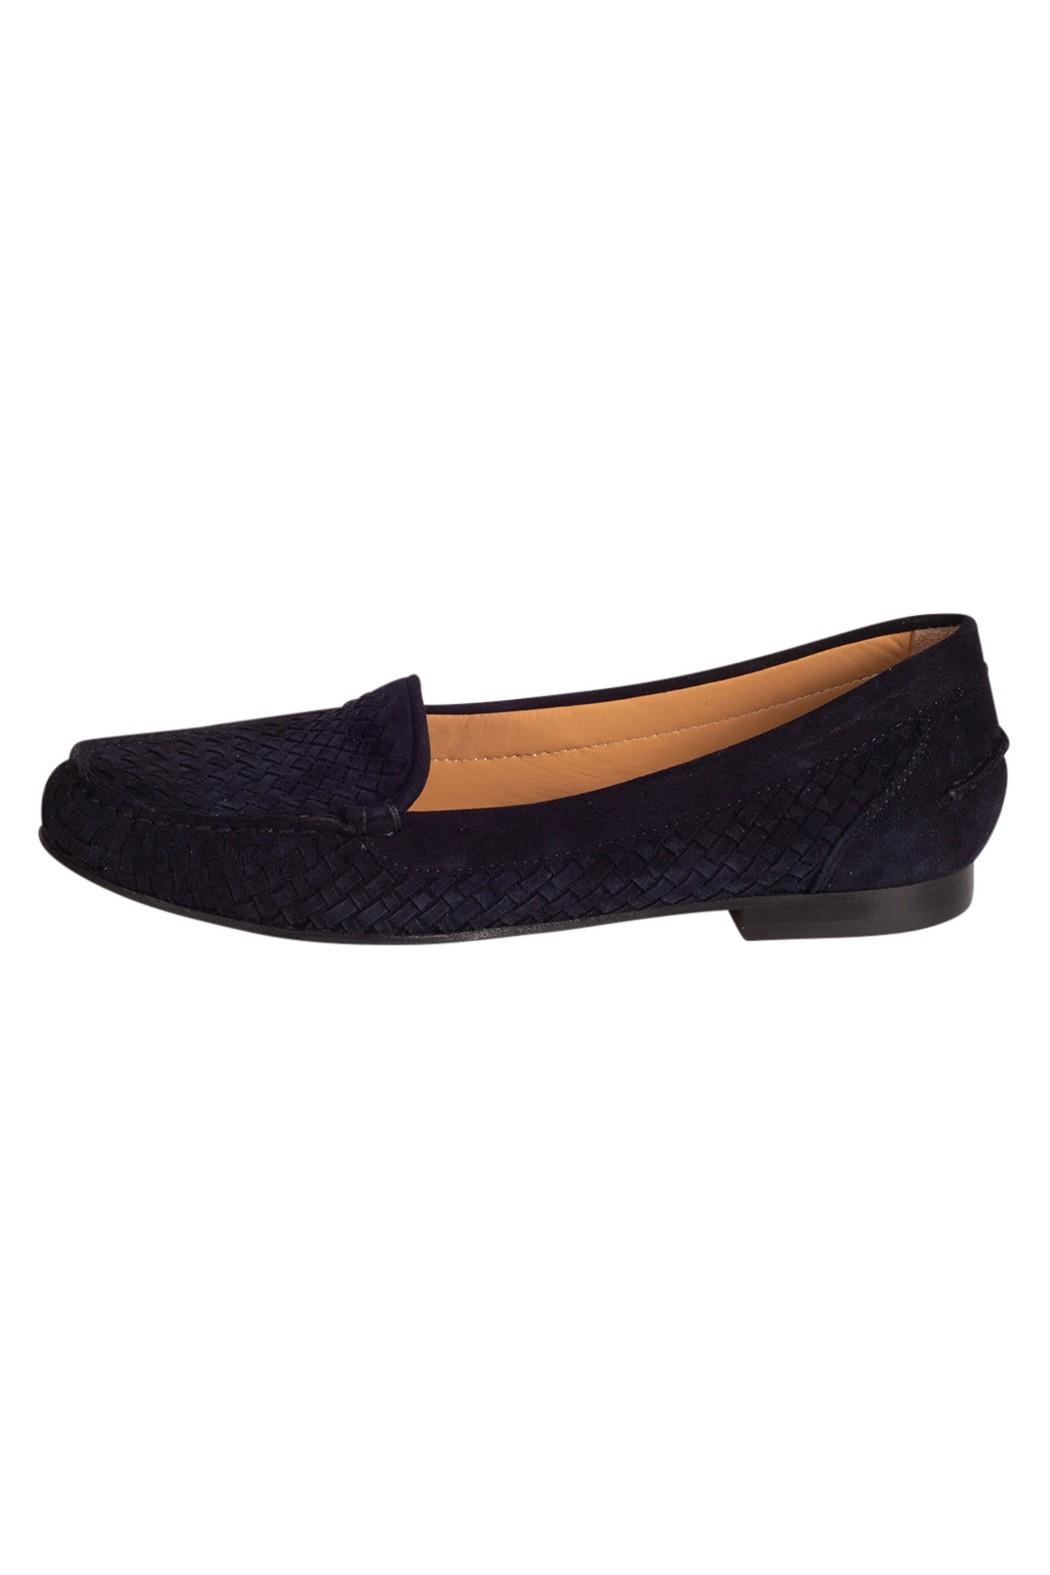 Pascucci Navy Suede Loafer - Main Image